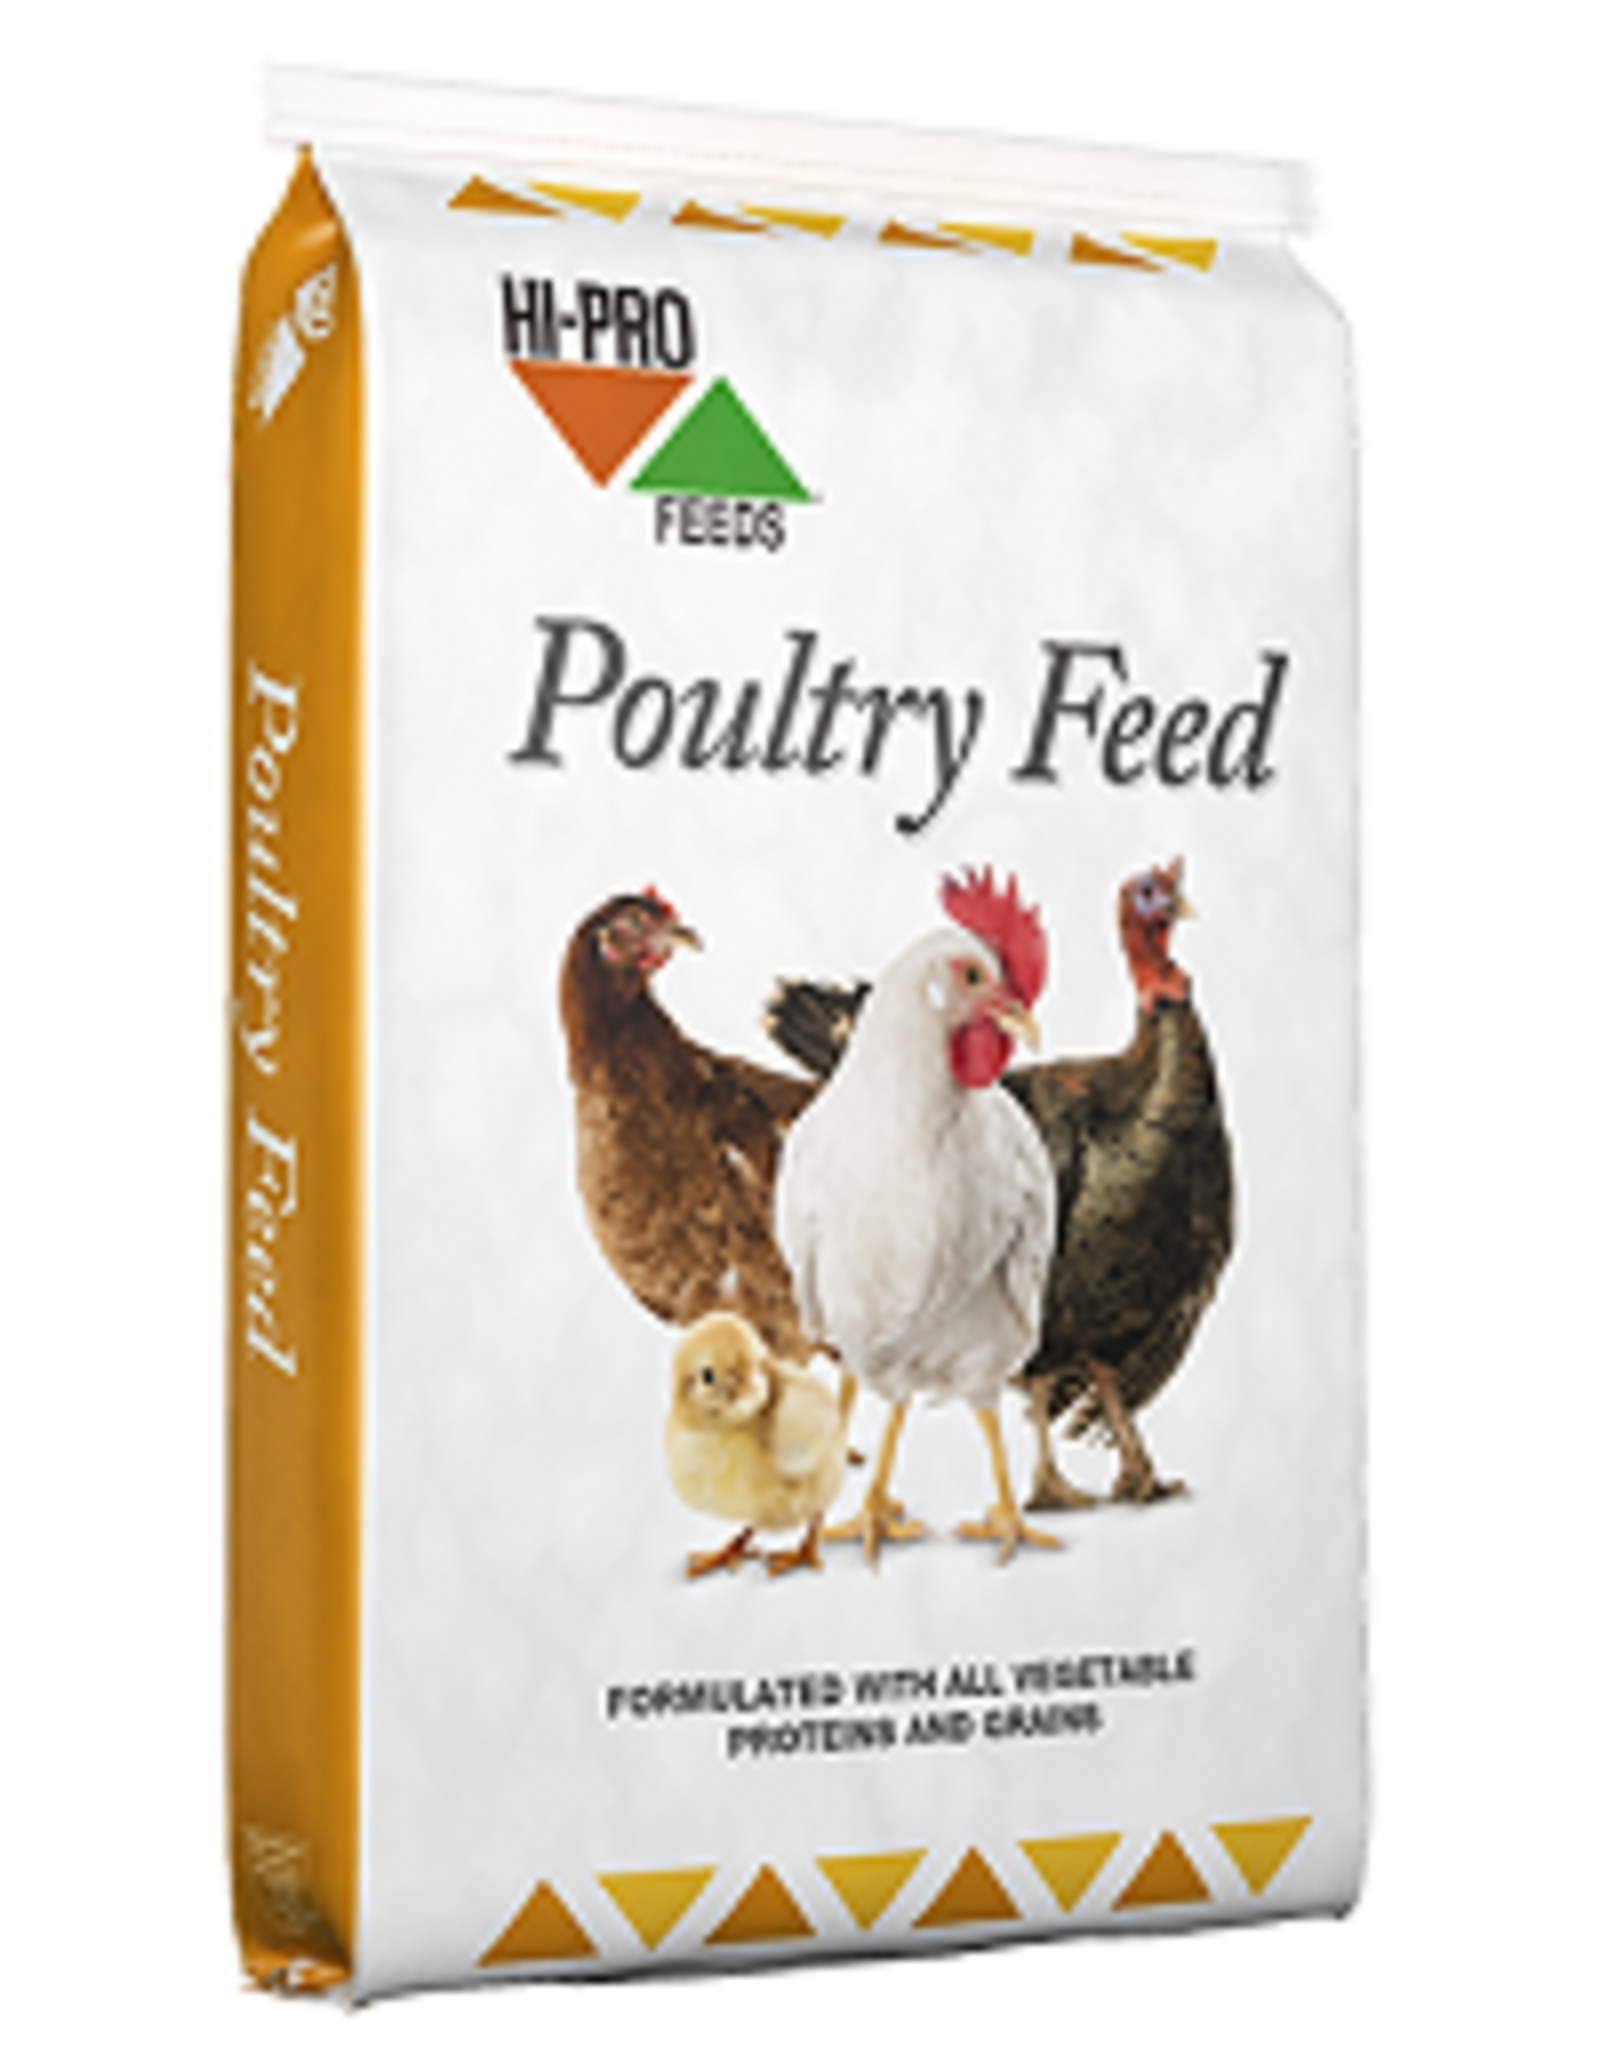 16% Chick Grower/Finisher Crumble Plain 20 kg - 120081